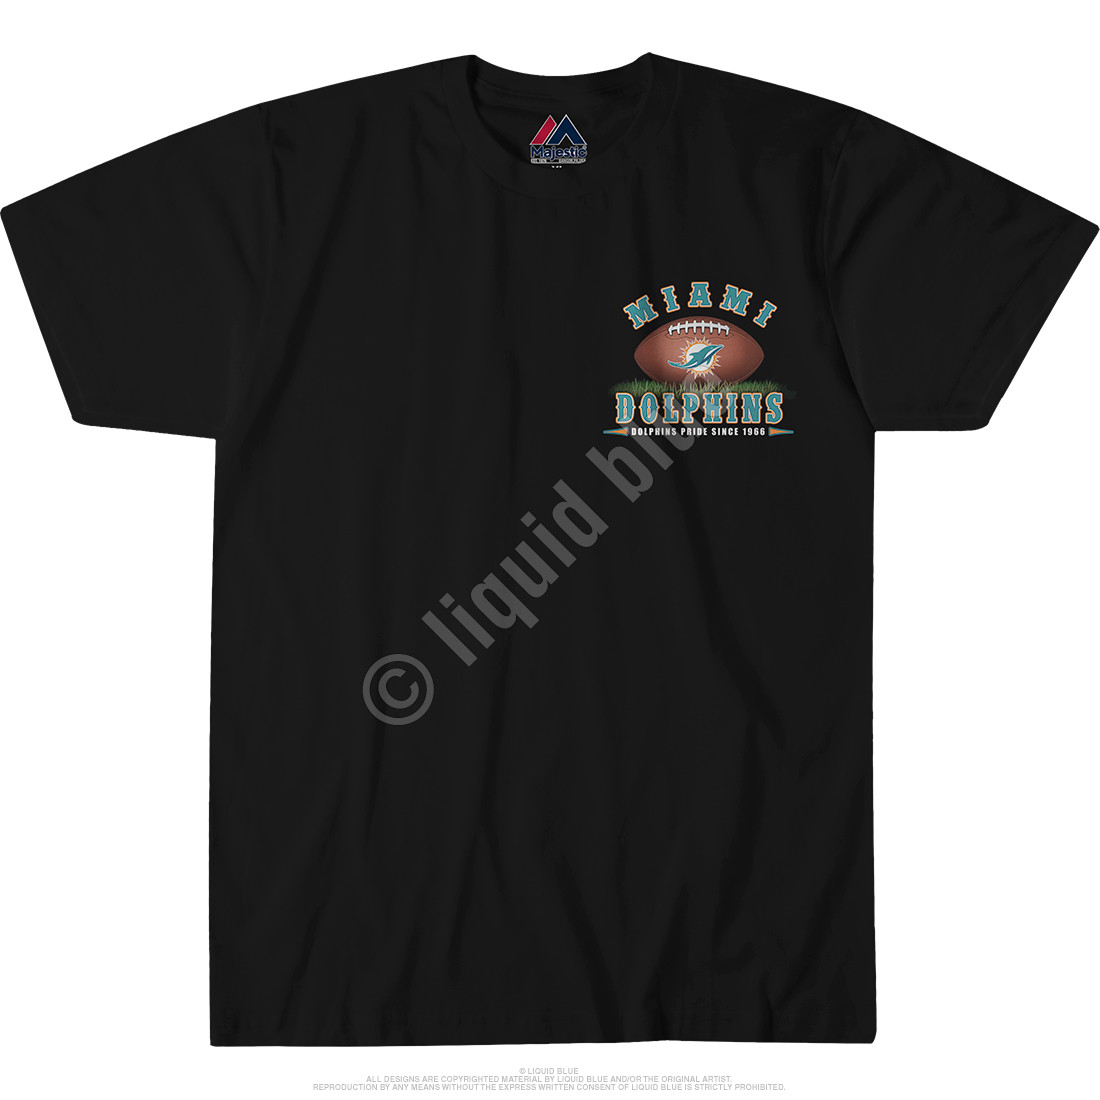 Miami Dolphins End Zone Black T-Shirt